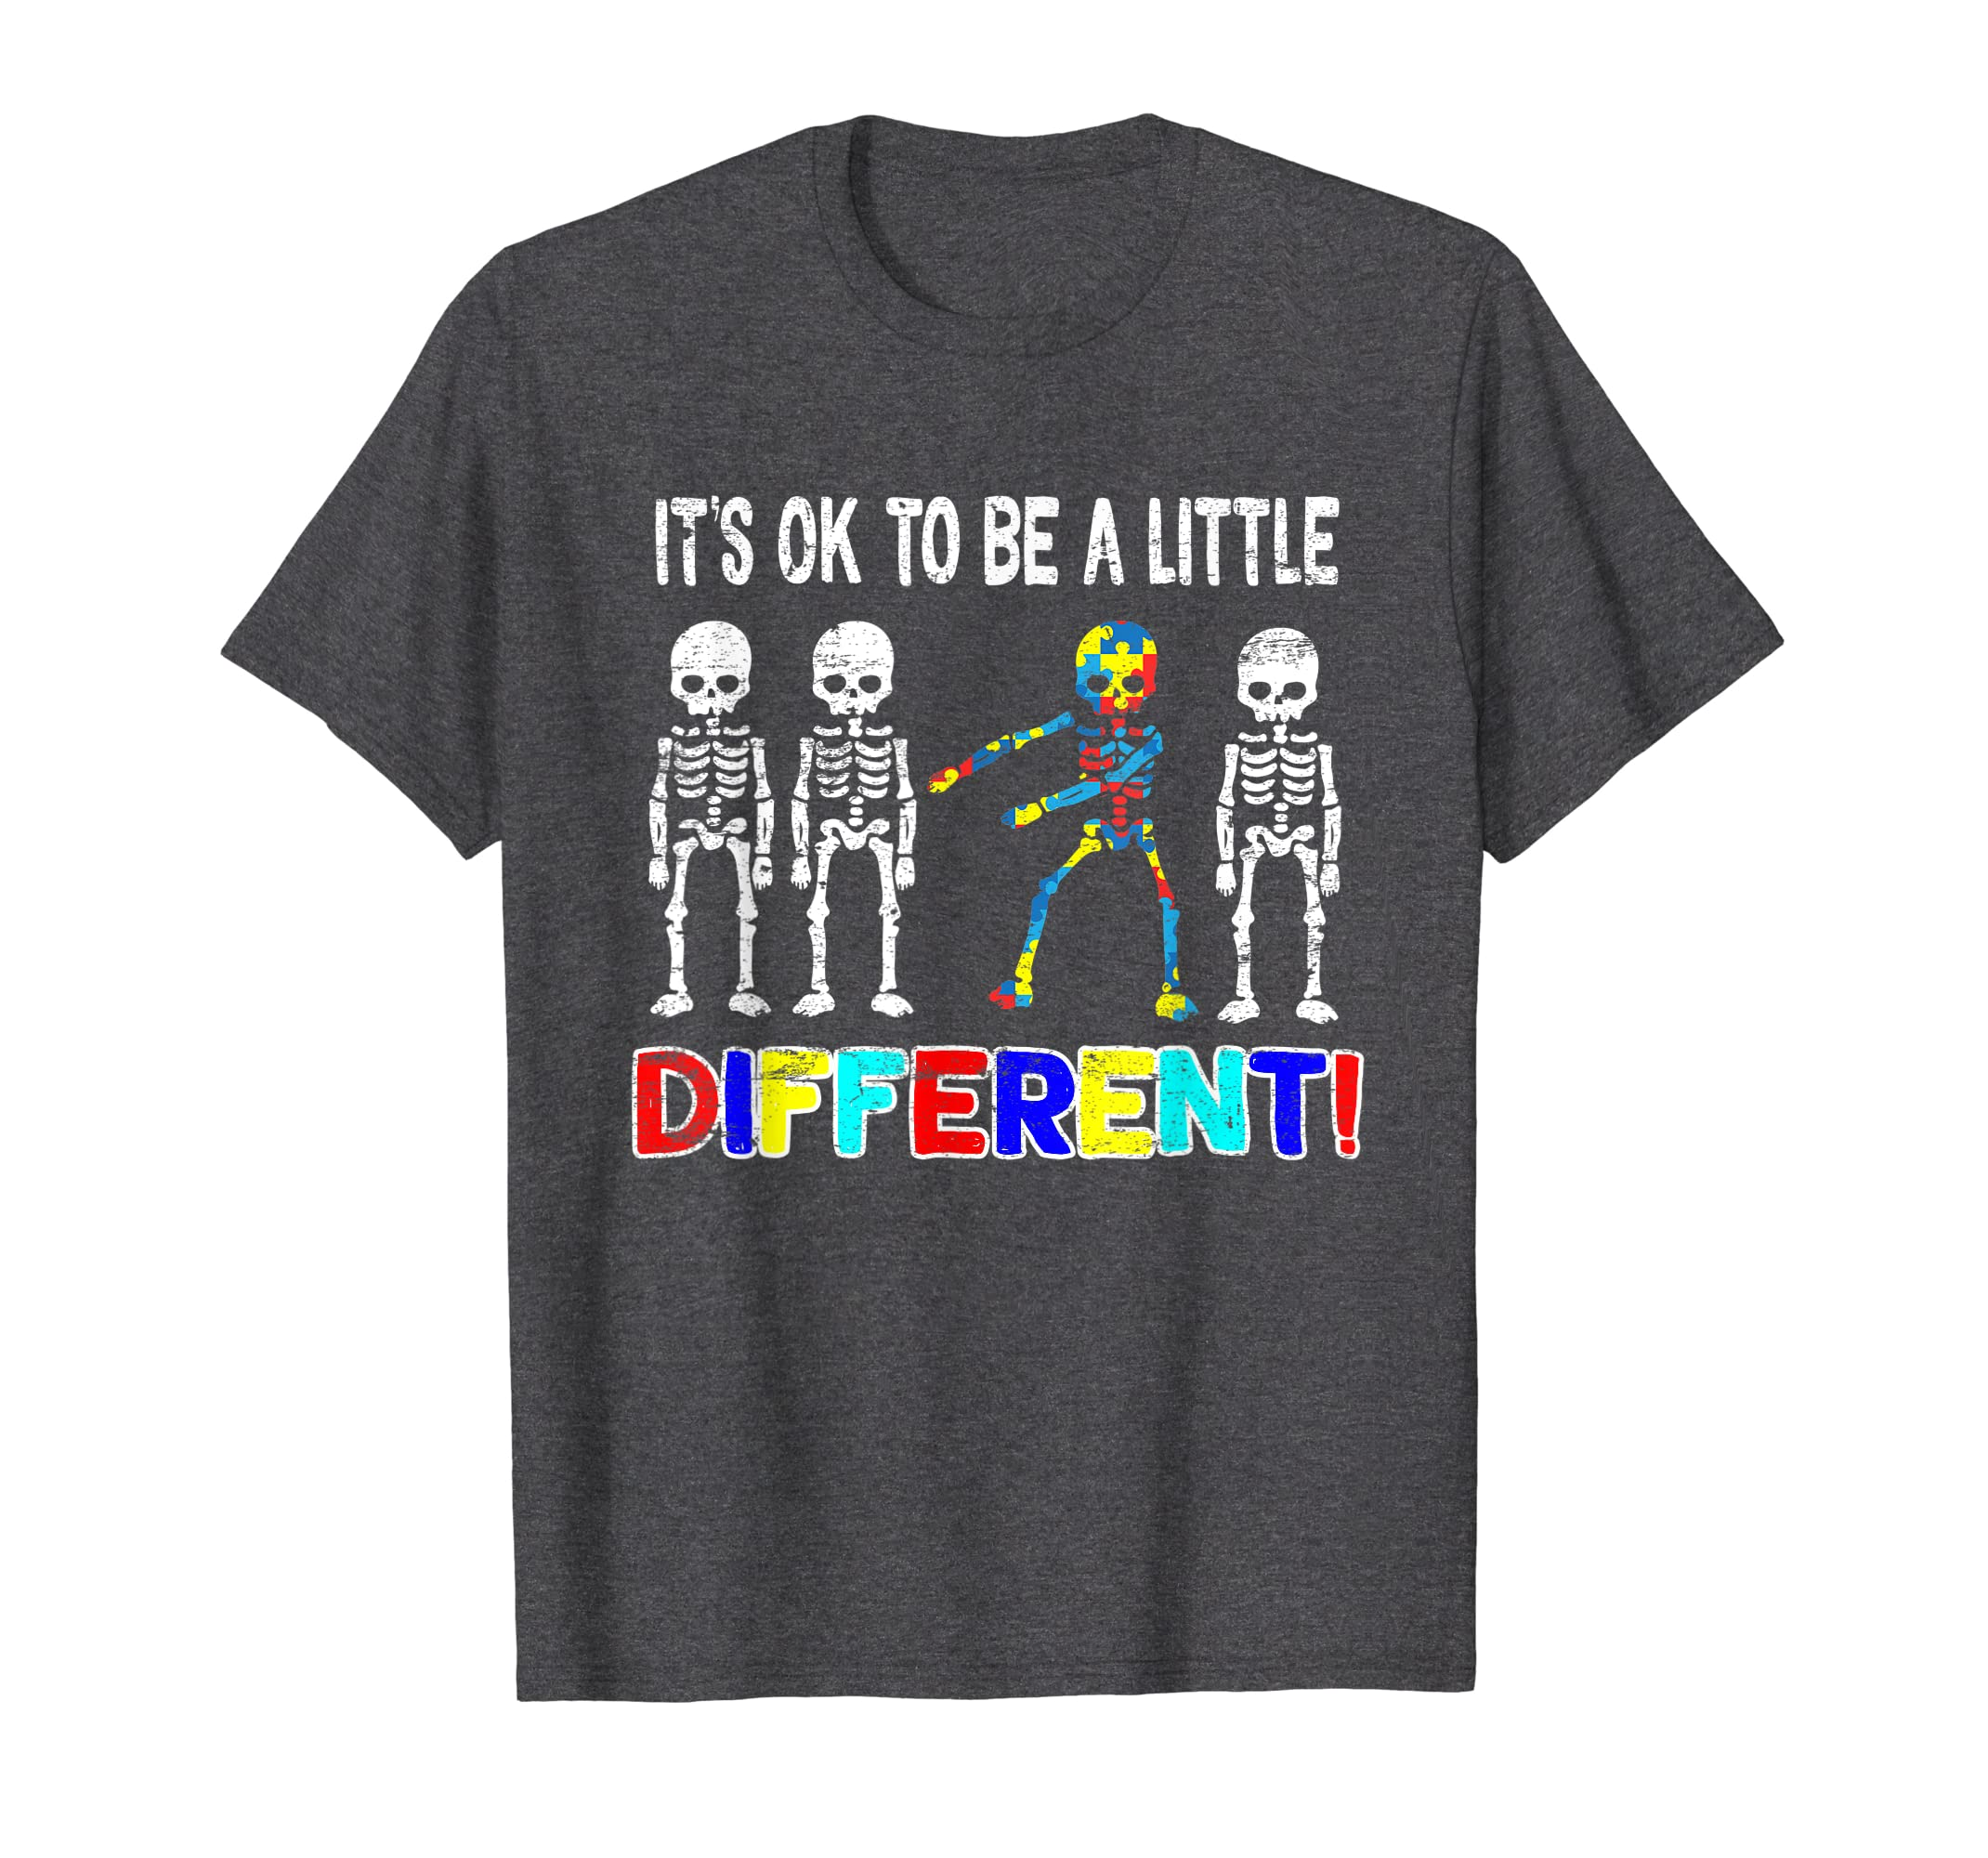 543f3cf0 Autism Skeleton Flossing Tshirt Gift Floss Little Different: Amazon.co.uk:  Clothing